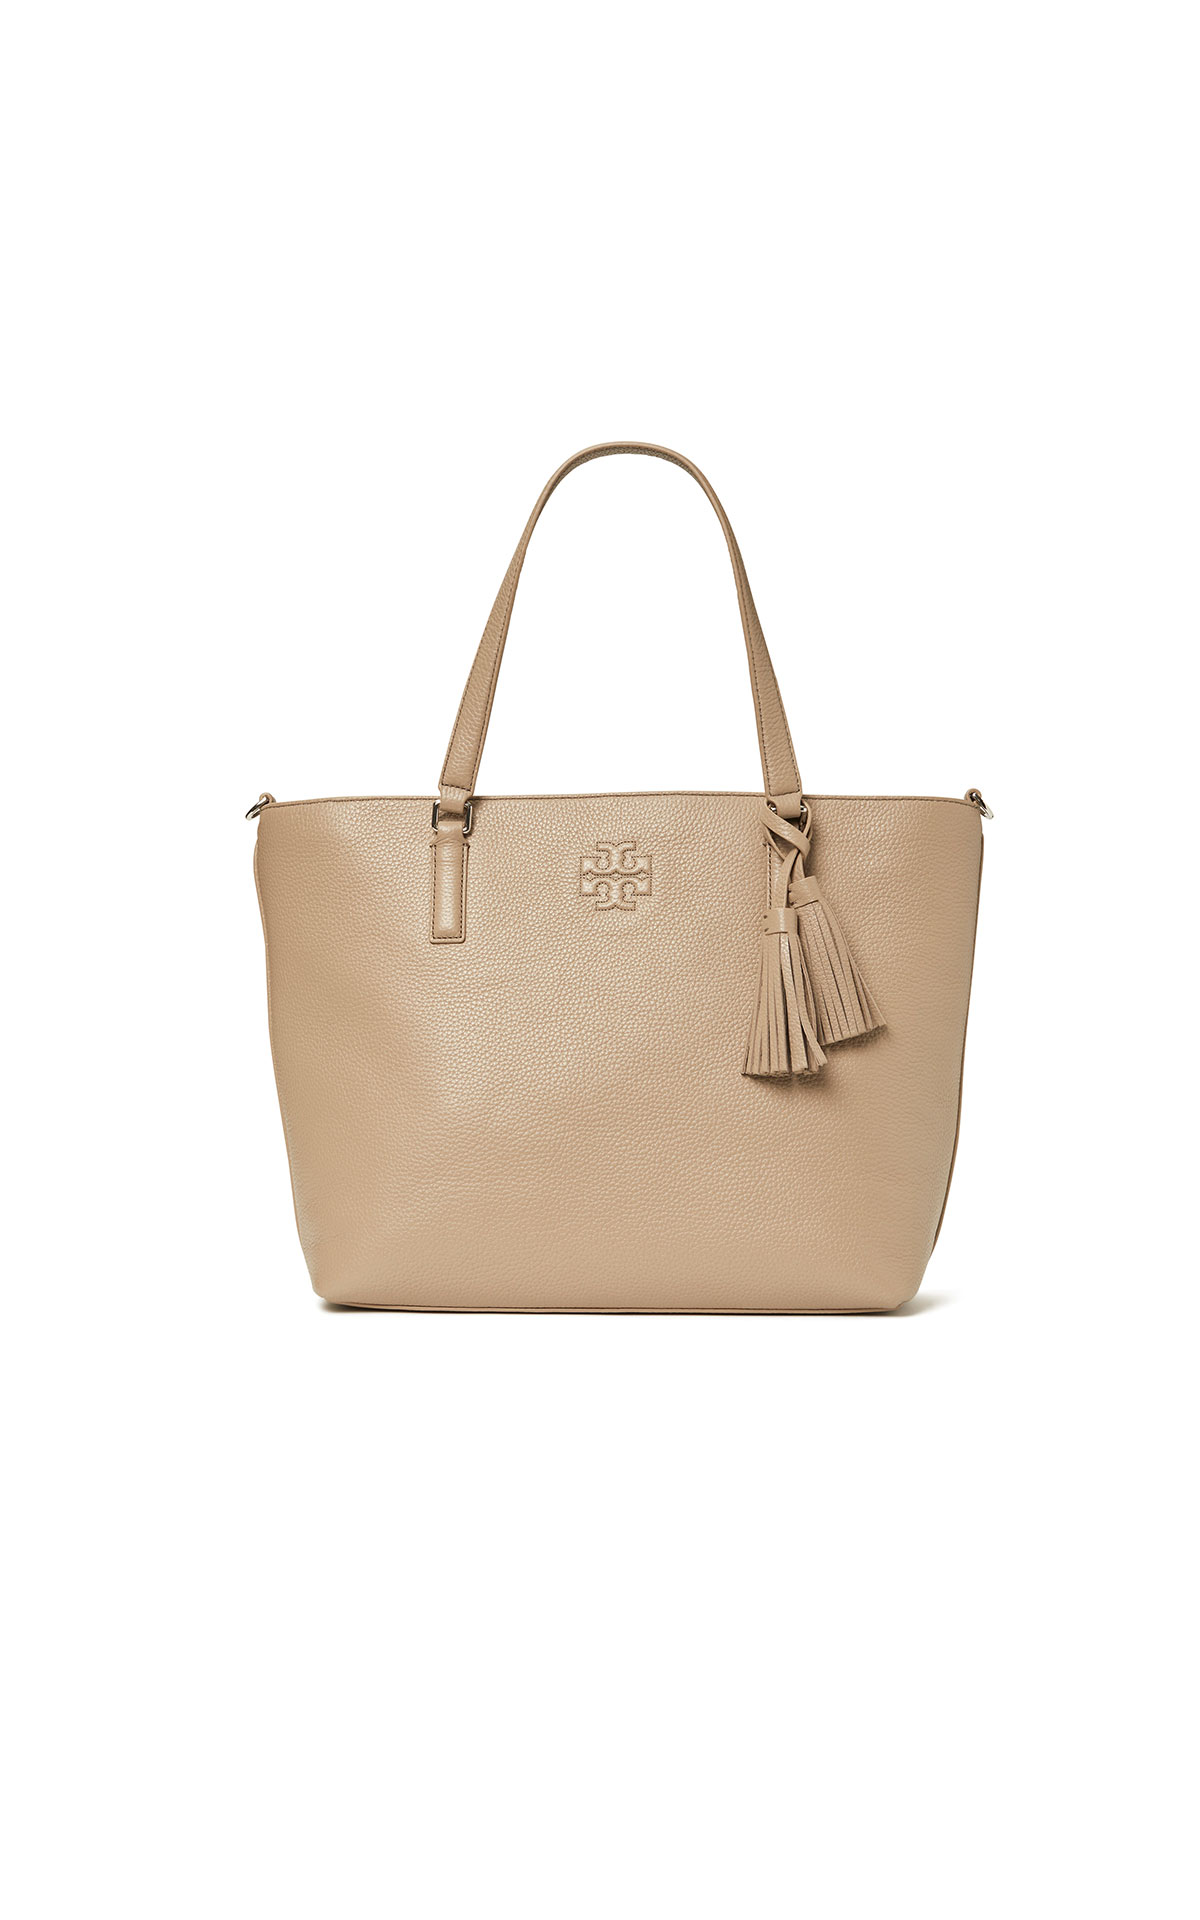 Tory Burch Thea zip tote from Bicester Village